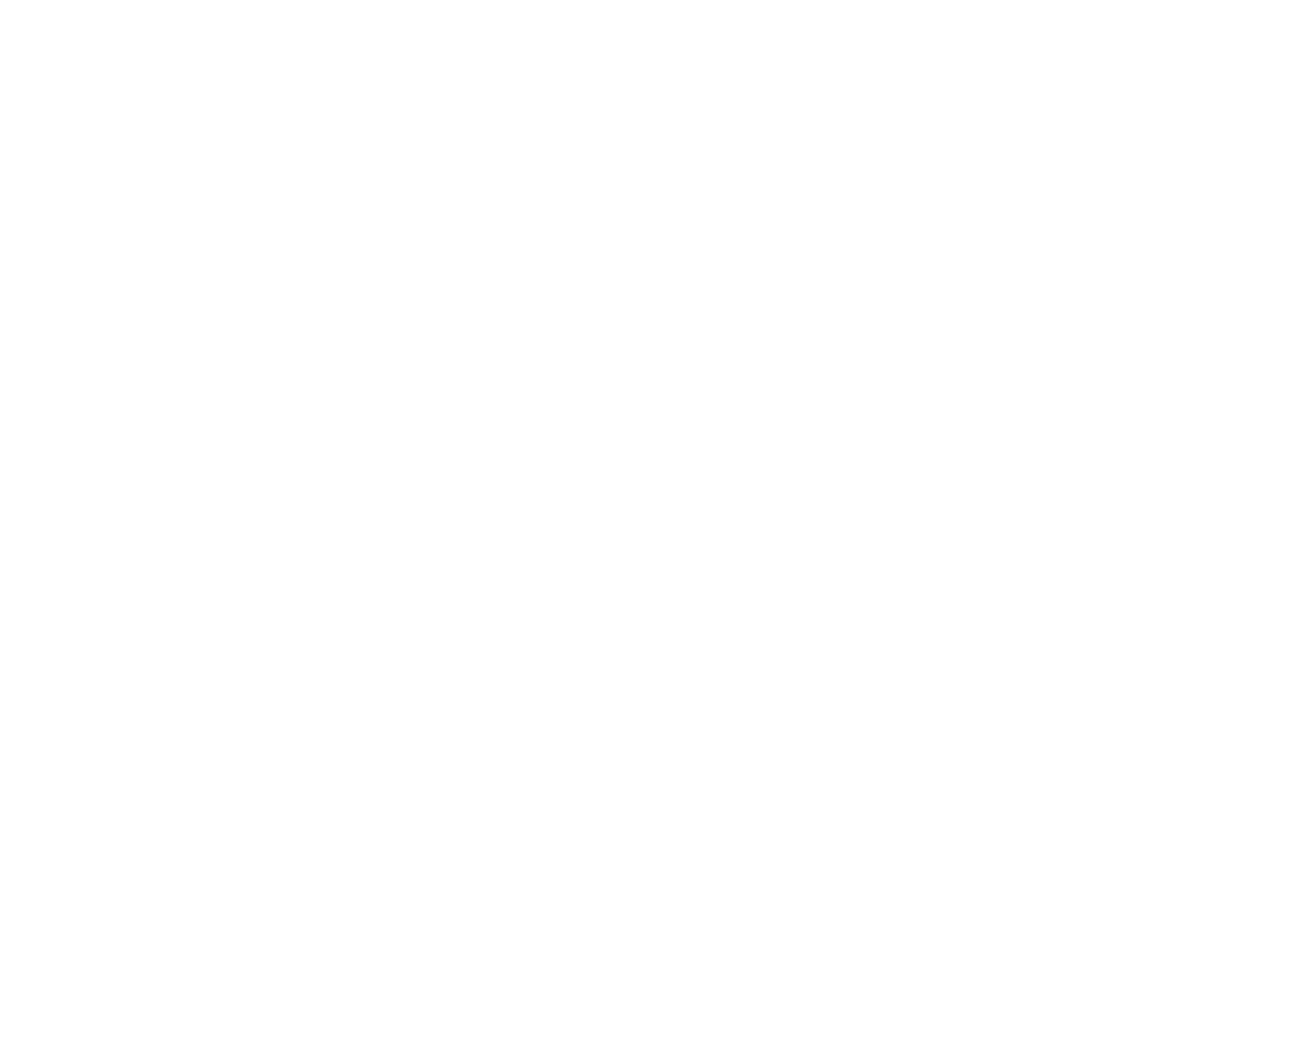 GEORGE ACHEAMPONG